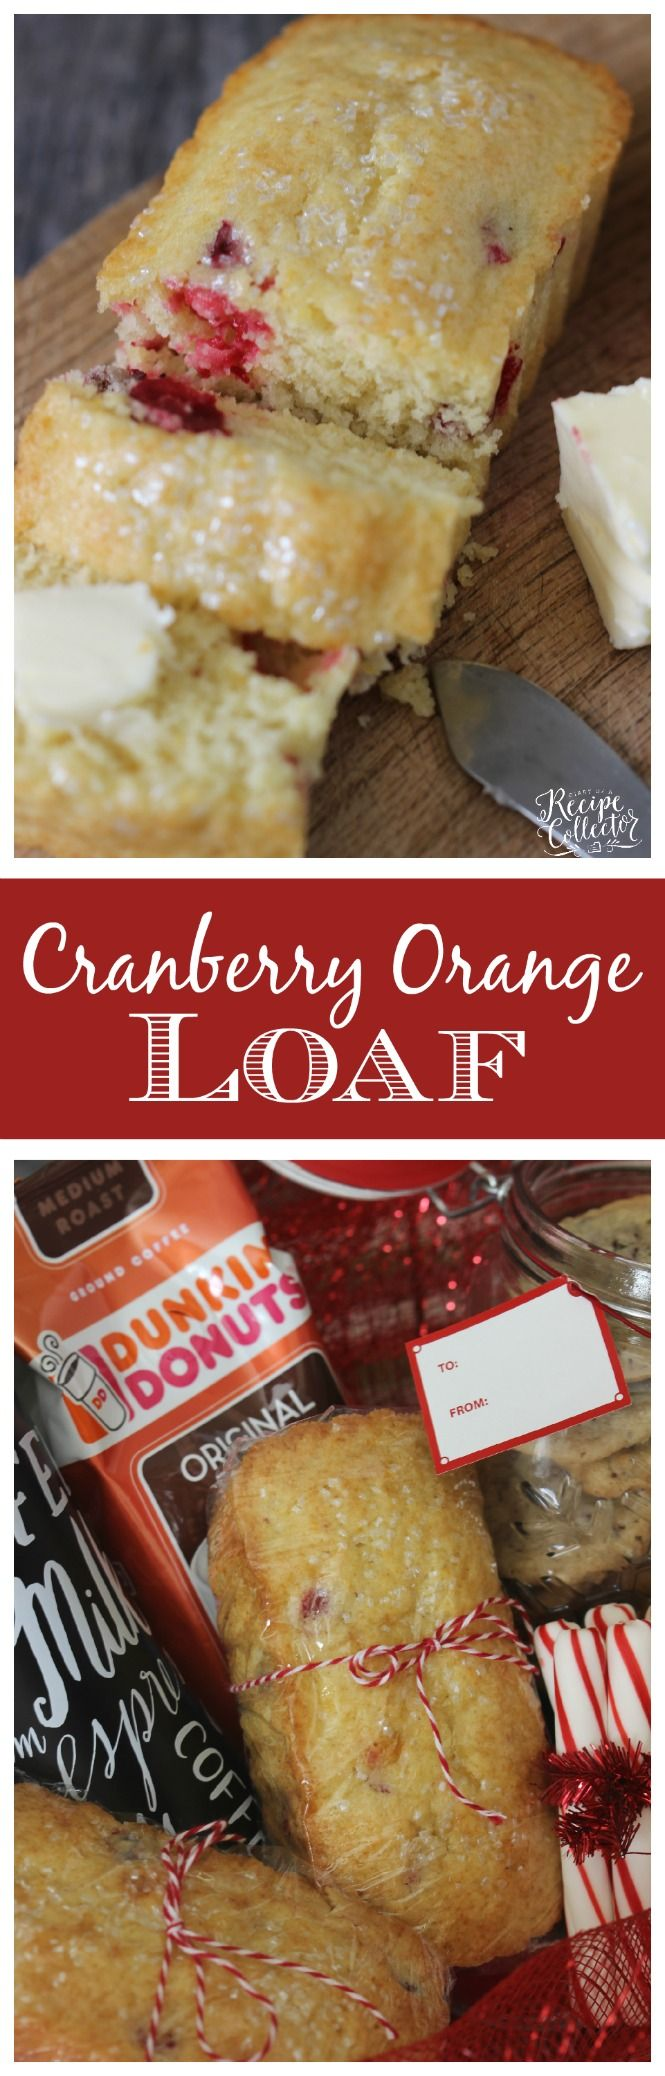 Cranberry Orange Loaf - A wonderfully easy and delicious recipe filled with cranberries and orange juice. Plus a great gift basket idea featuring Dunkin' Donuts® Coffee! #DunkinToTheRescue #ad